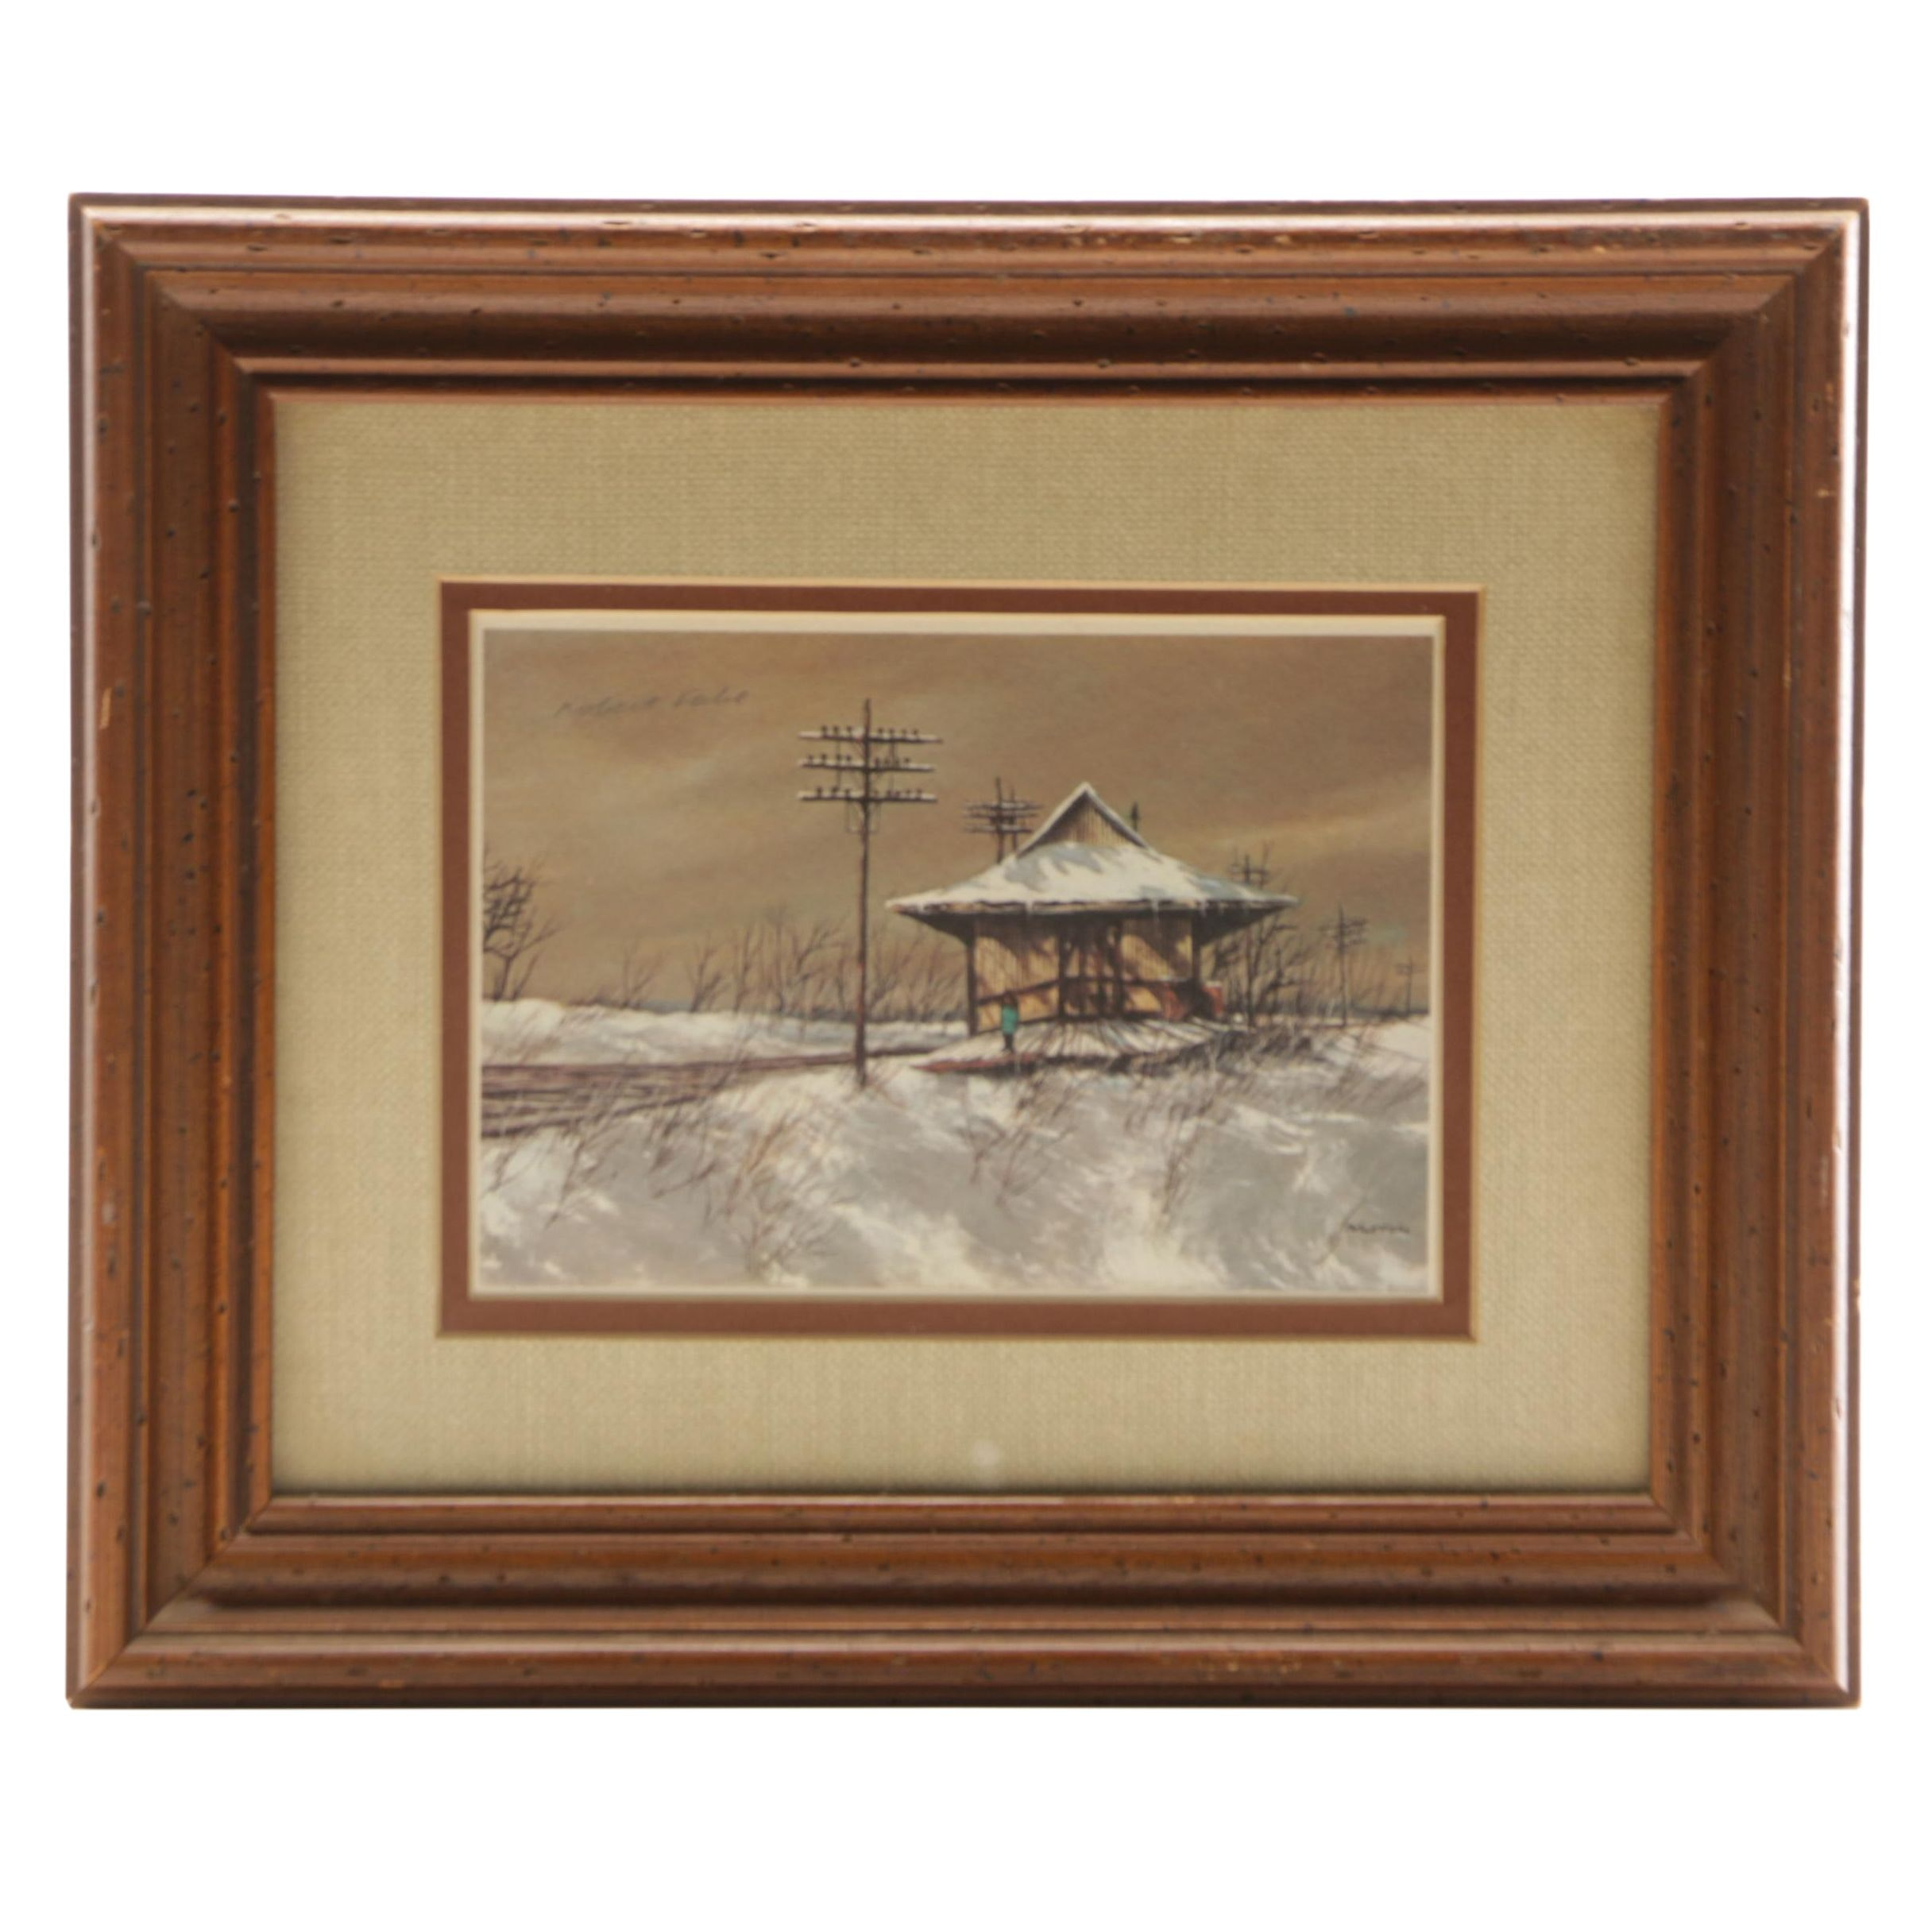 Robert Fabe Offset Lithograph of Railroad Station in Winter